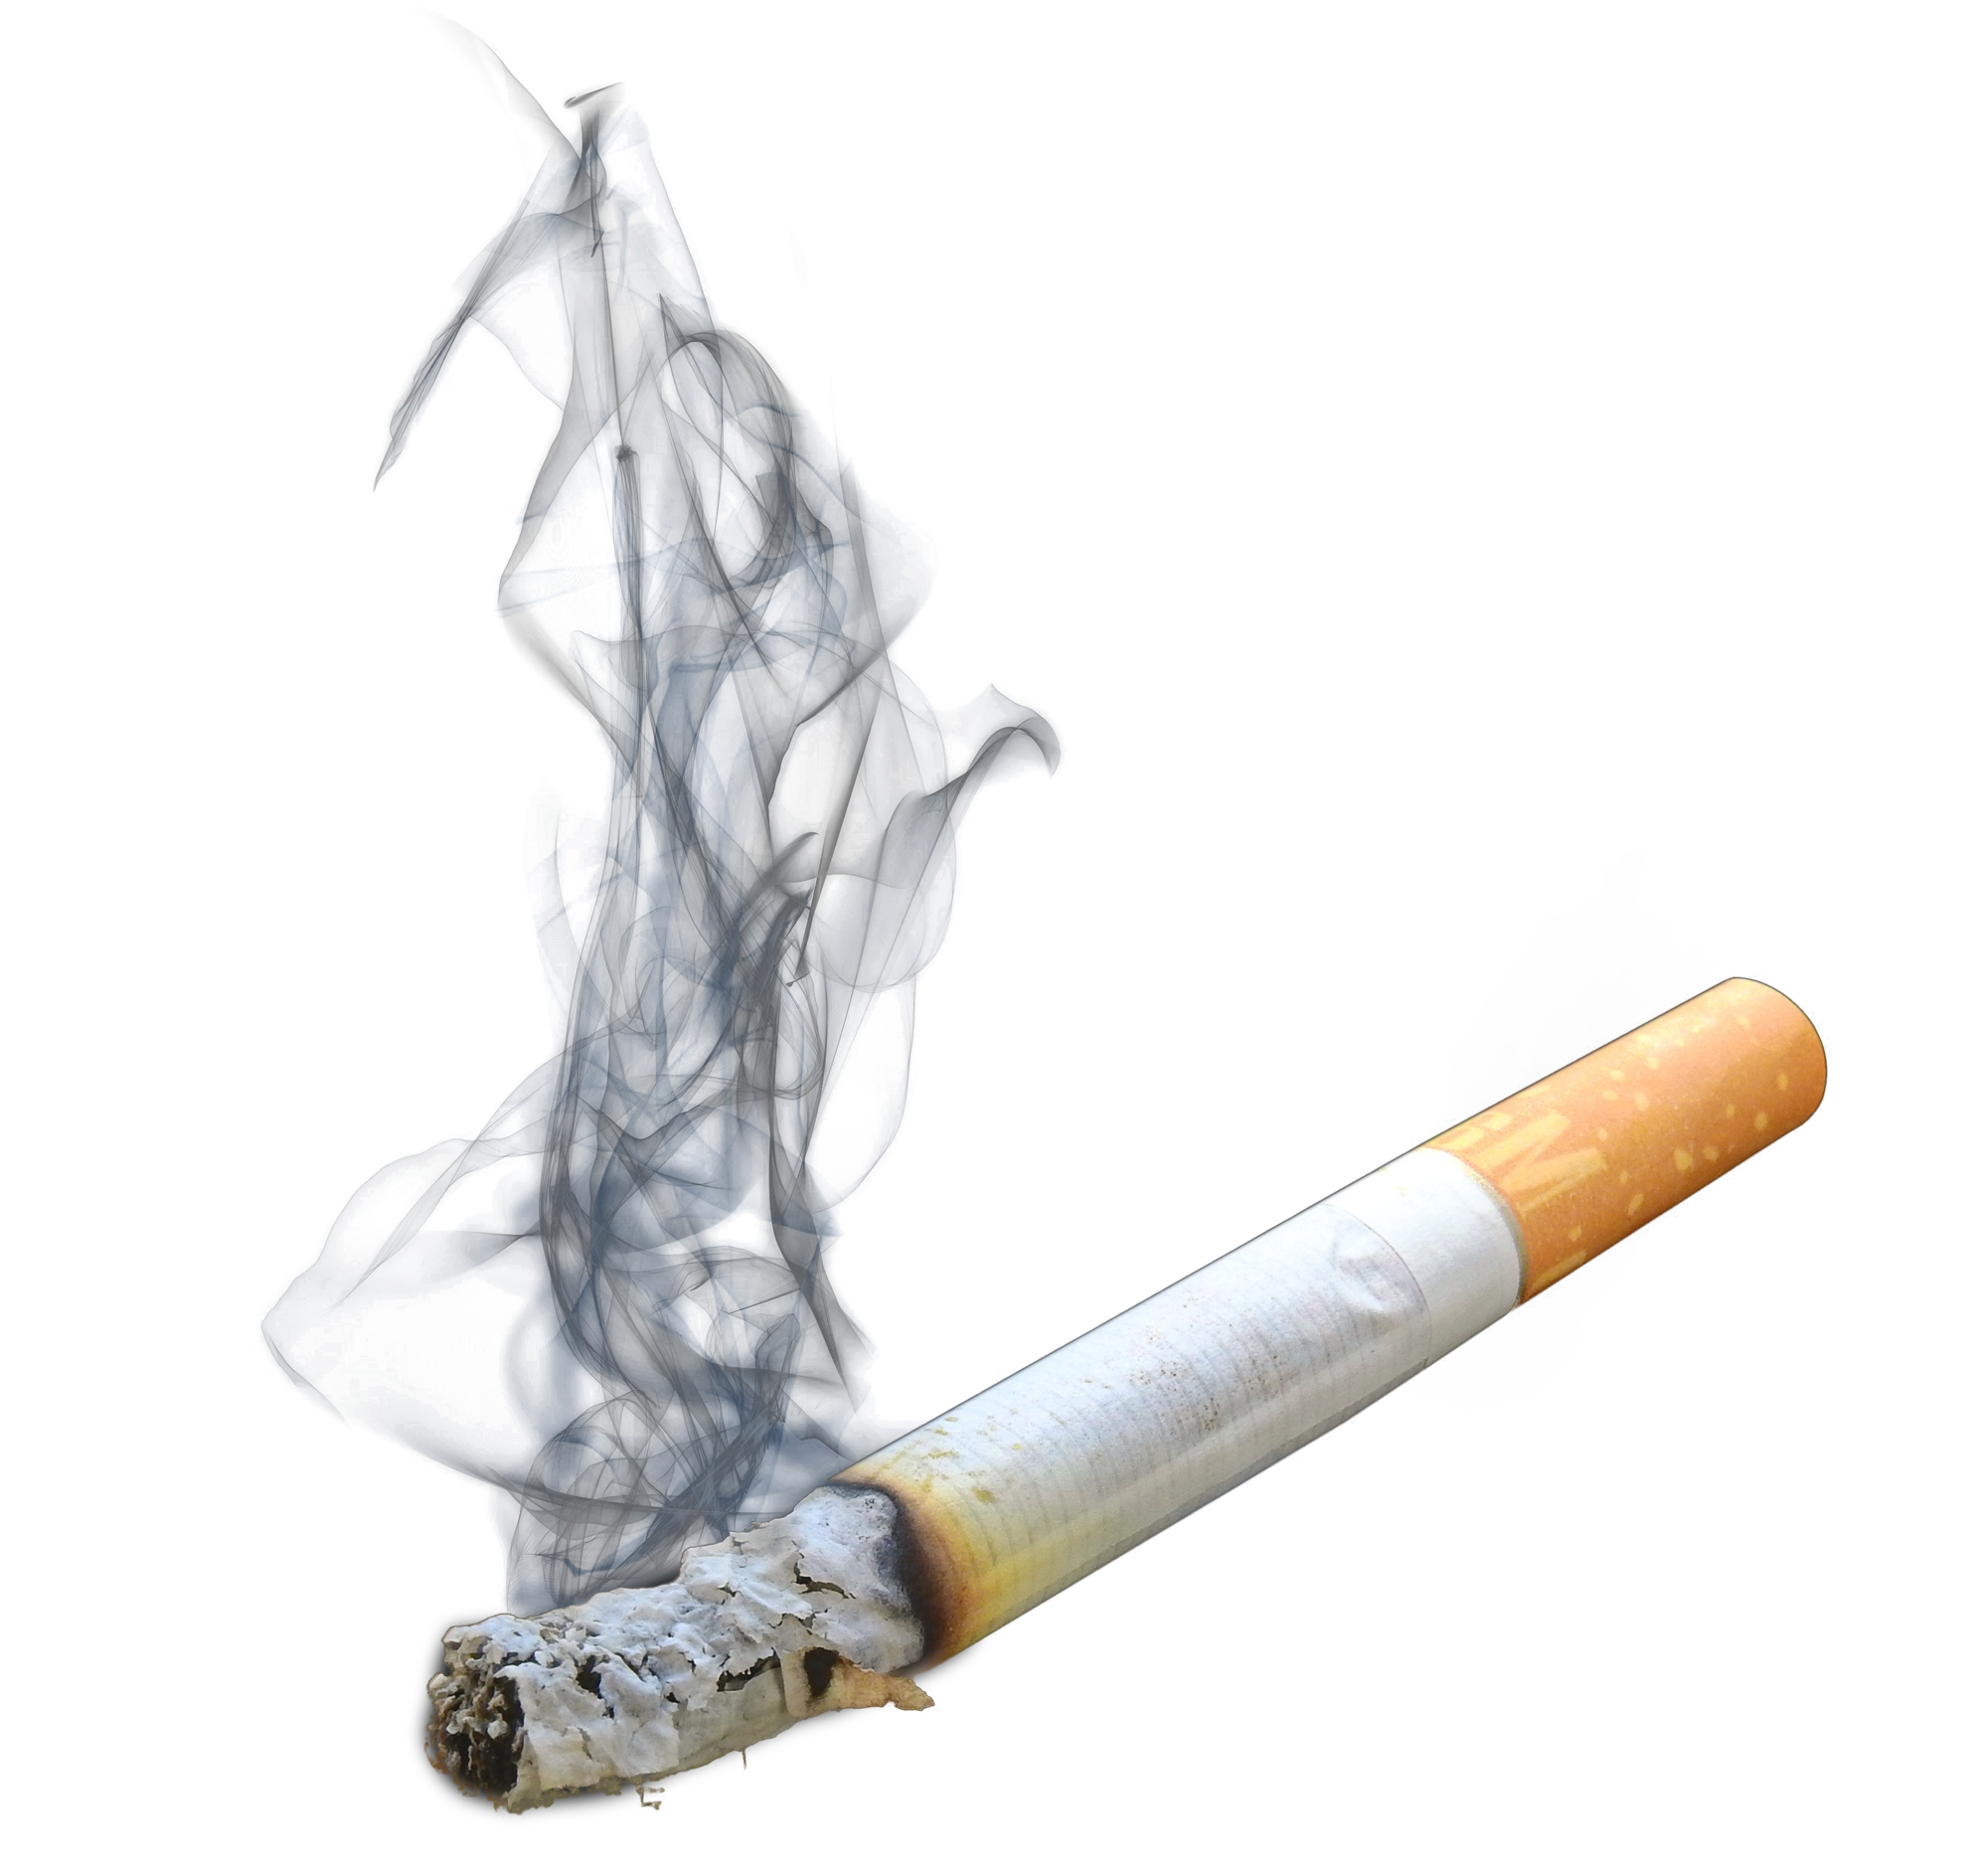 Download Tobacco PNG Image for Free.